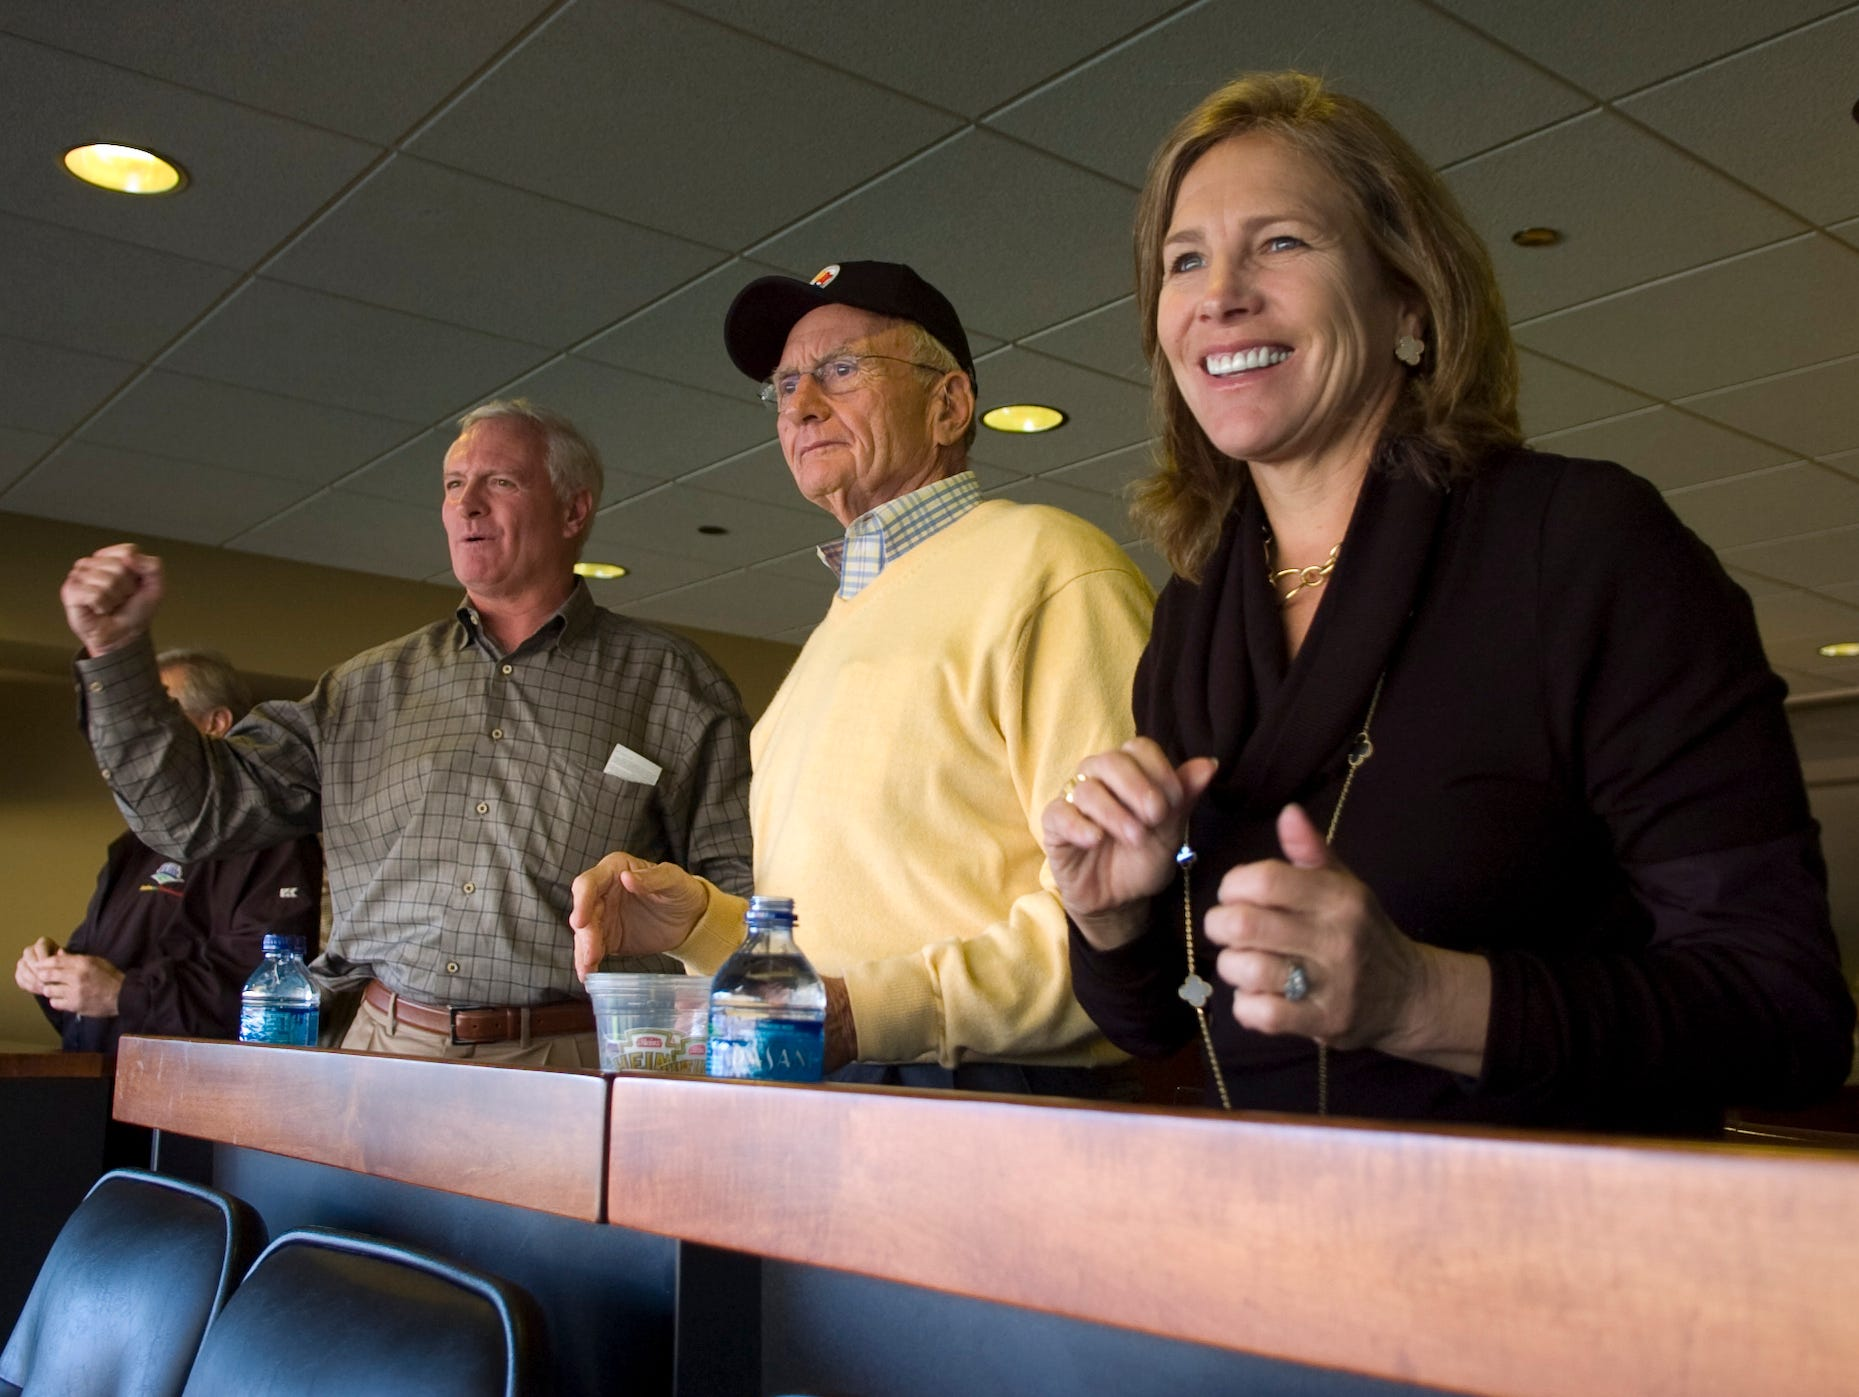 Jimmy Haslam, president and CEO of Pilot Travel Centers, with father Jim Haslam, founder and Chairman of Pilot Corp., and Dee Haslam watch the Pittsburgh Steelers play the Oakland Raiders in Pittsburgh on Nov. 21, 2010. Jimmy Haslam became a partner in the Pittsburgh Steelers in 2008.